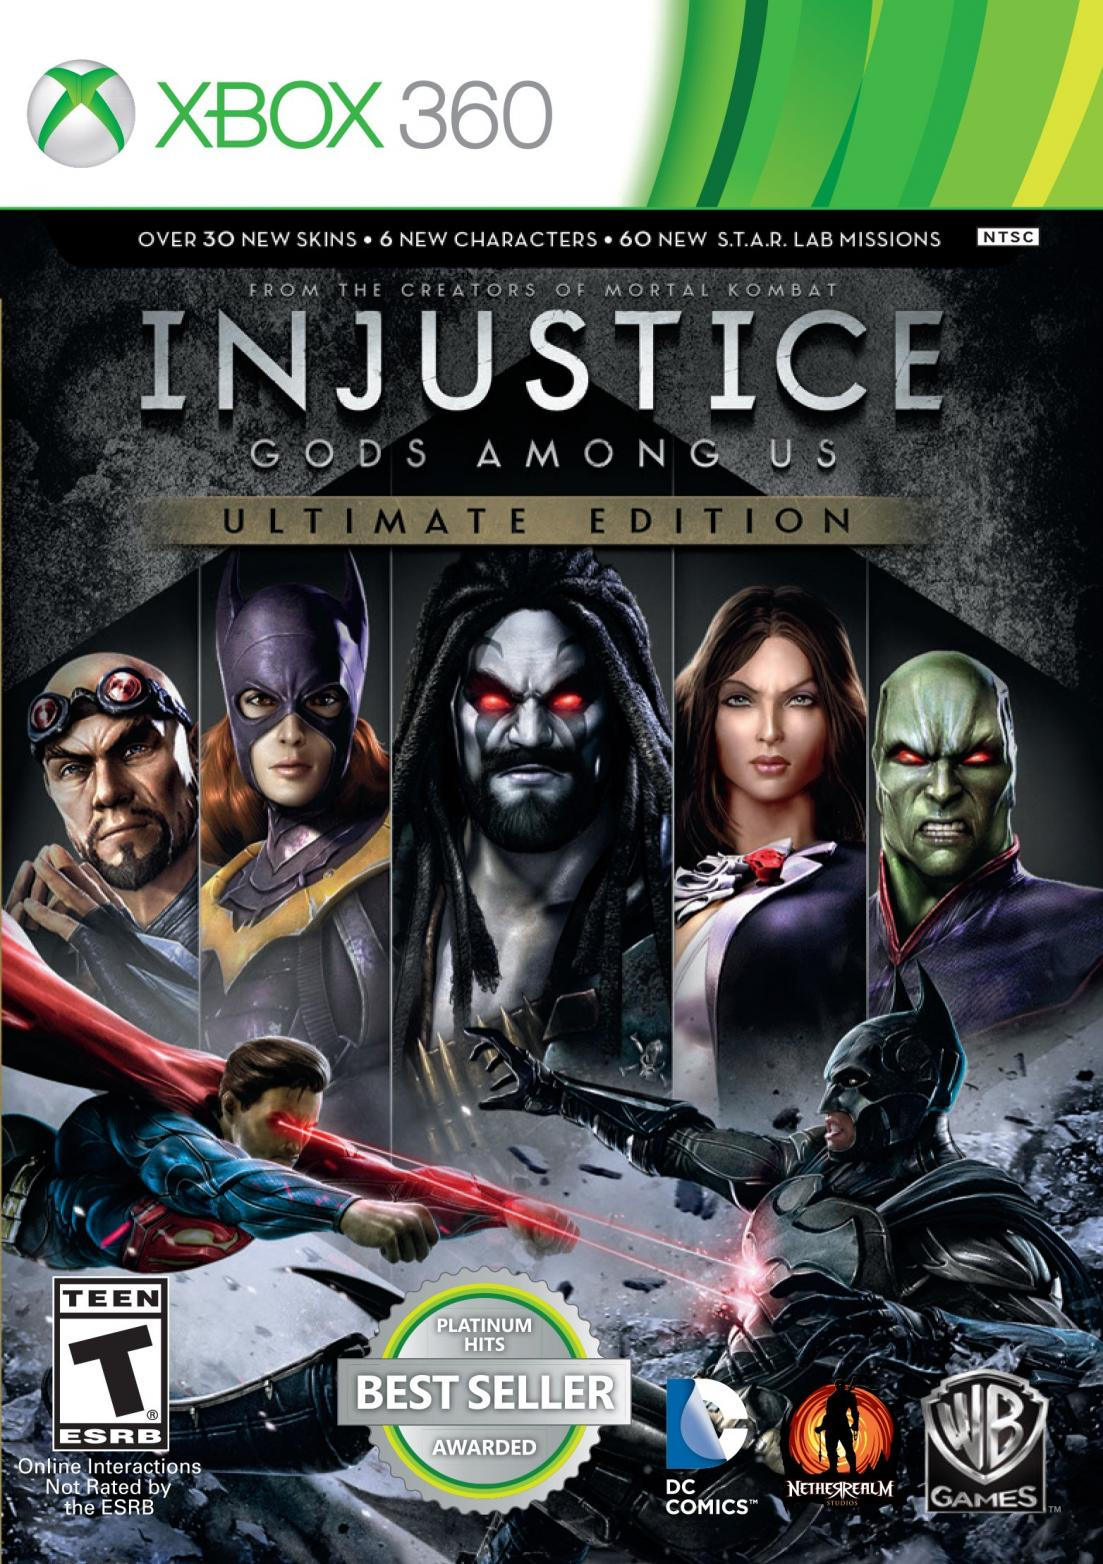 Injustice: gods among us.